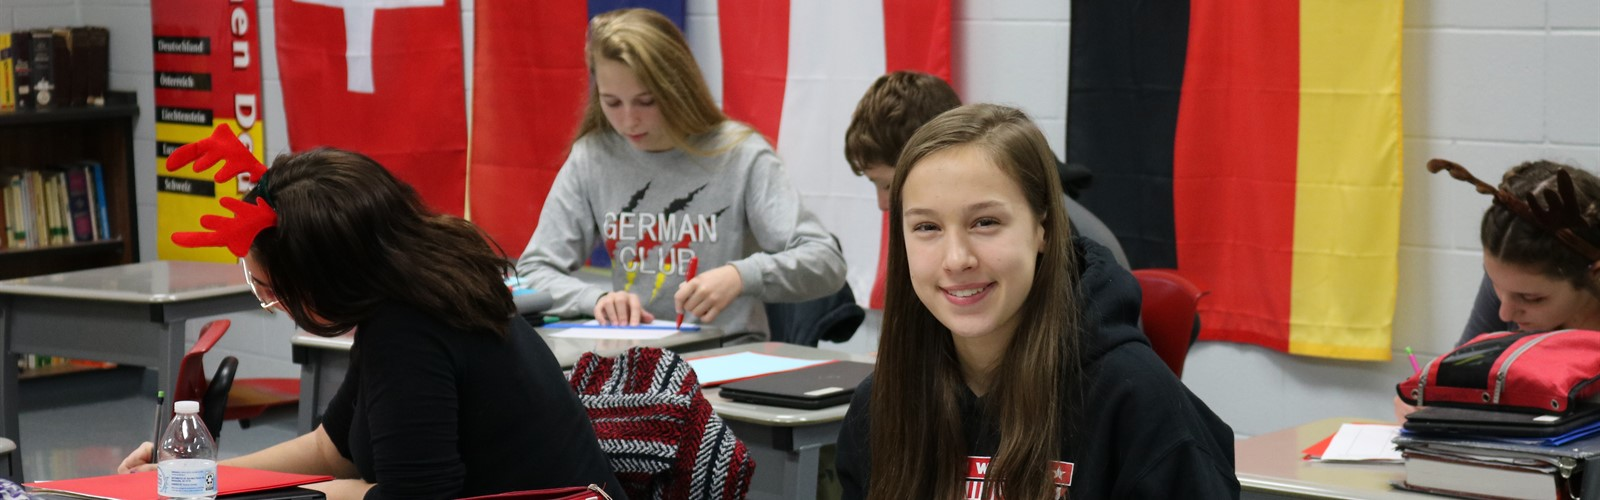 Students writing letters in German class